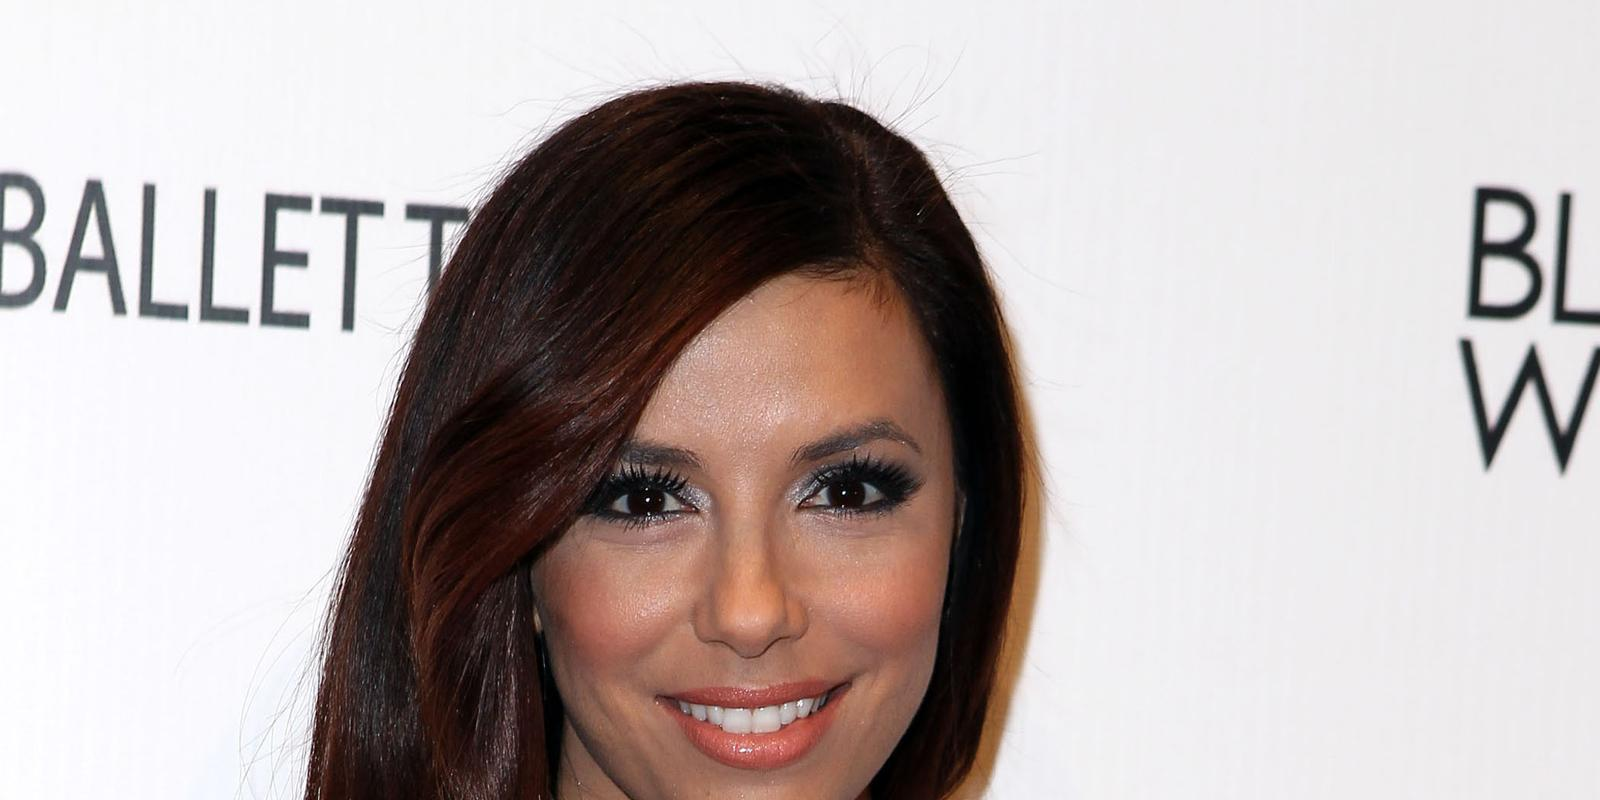 eva longoria reality dating show Now she's ready for love eva longoria was rumored to be romantically involved with entrepreneur and philanthropist ernesto arguello, who was cast in the dating reality show that she produced, ready for love, but the actress shot down the reports, saying they were just friends.